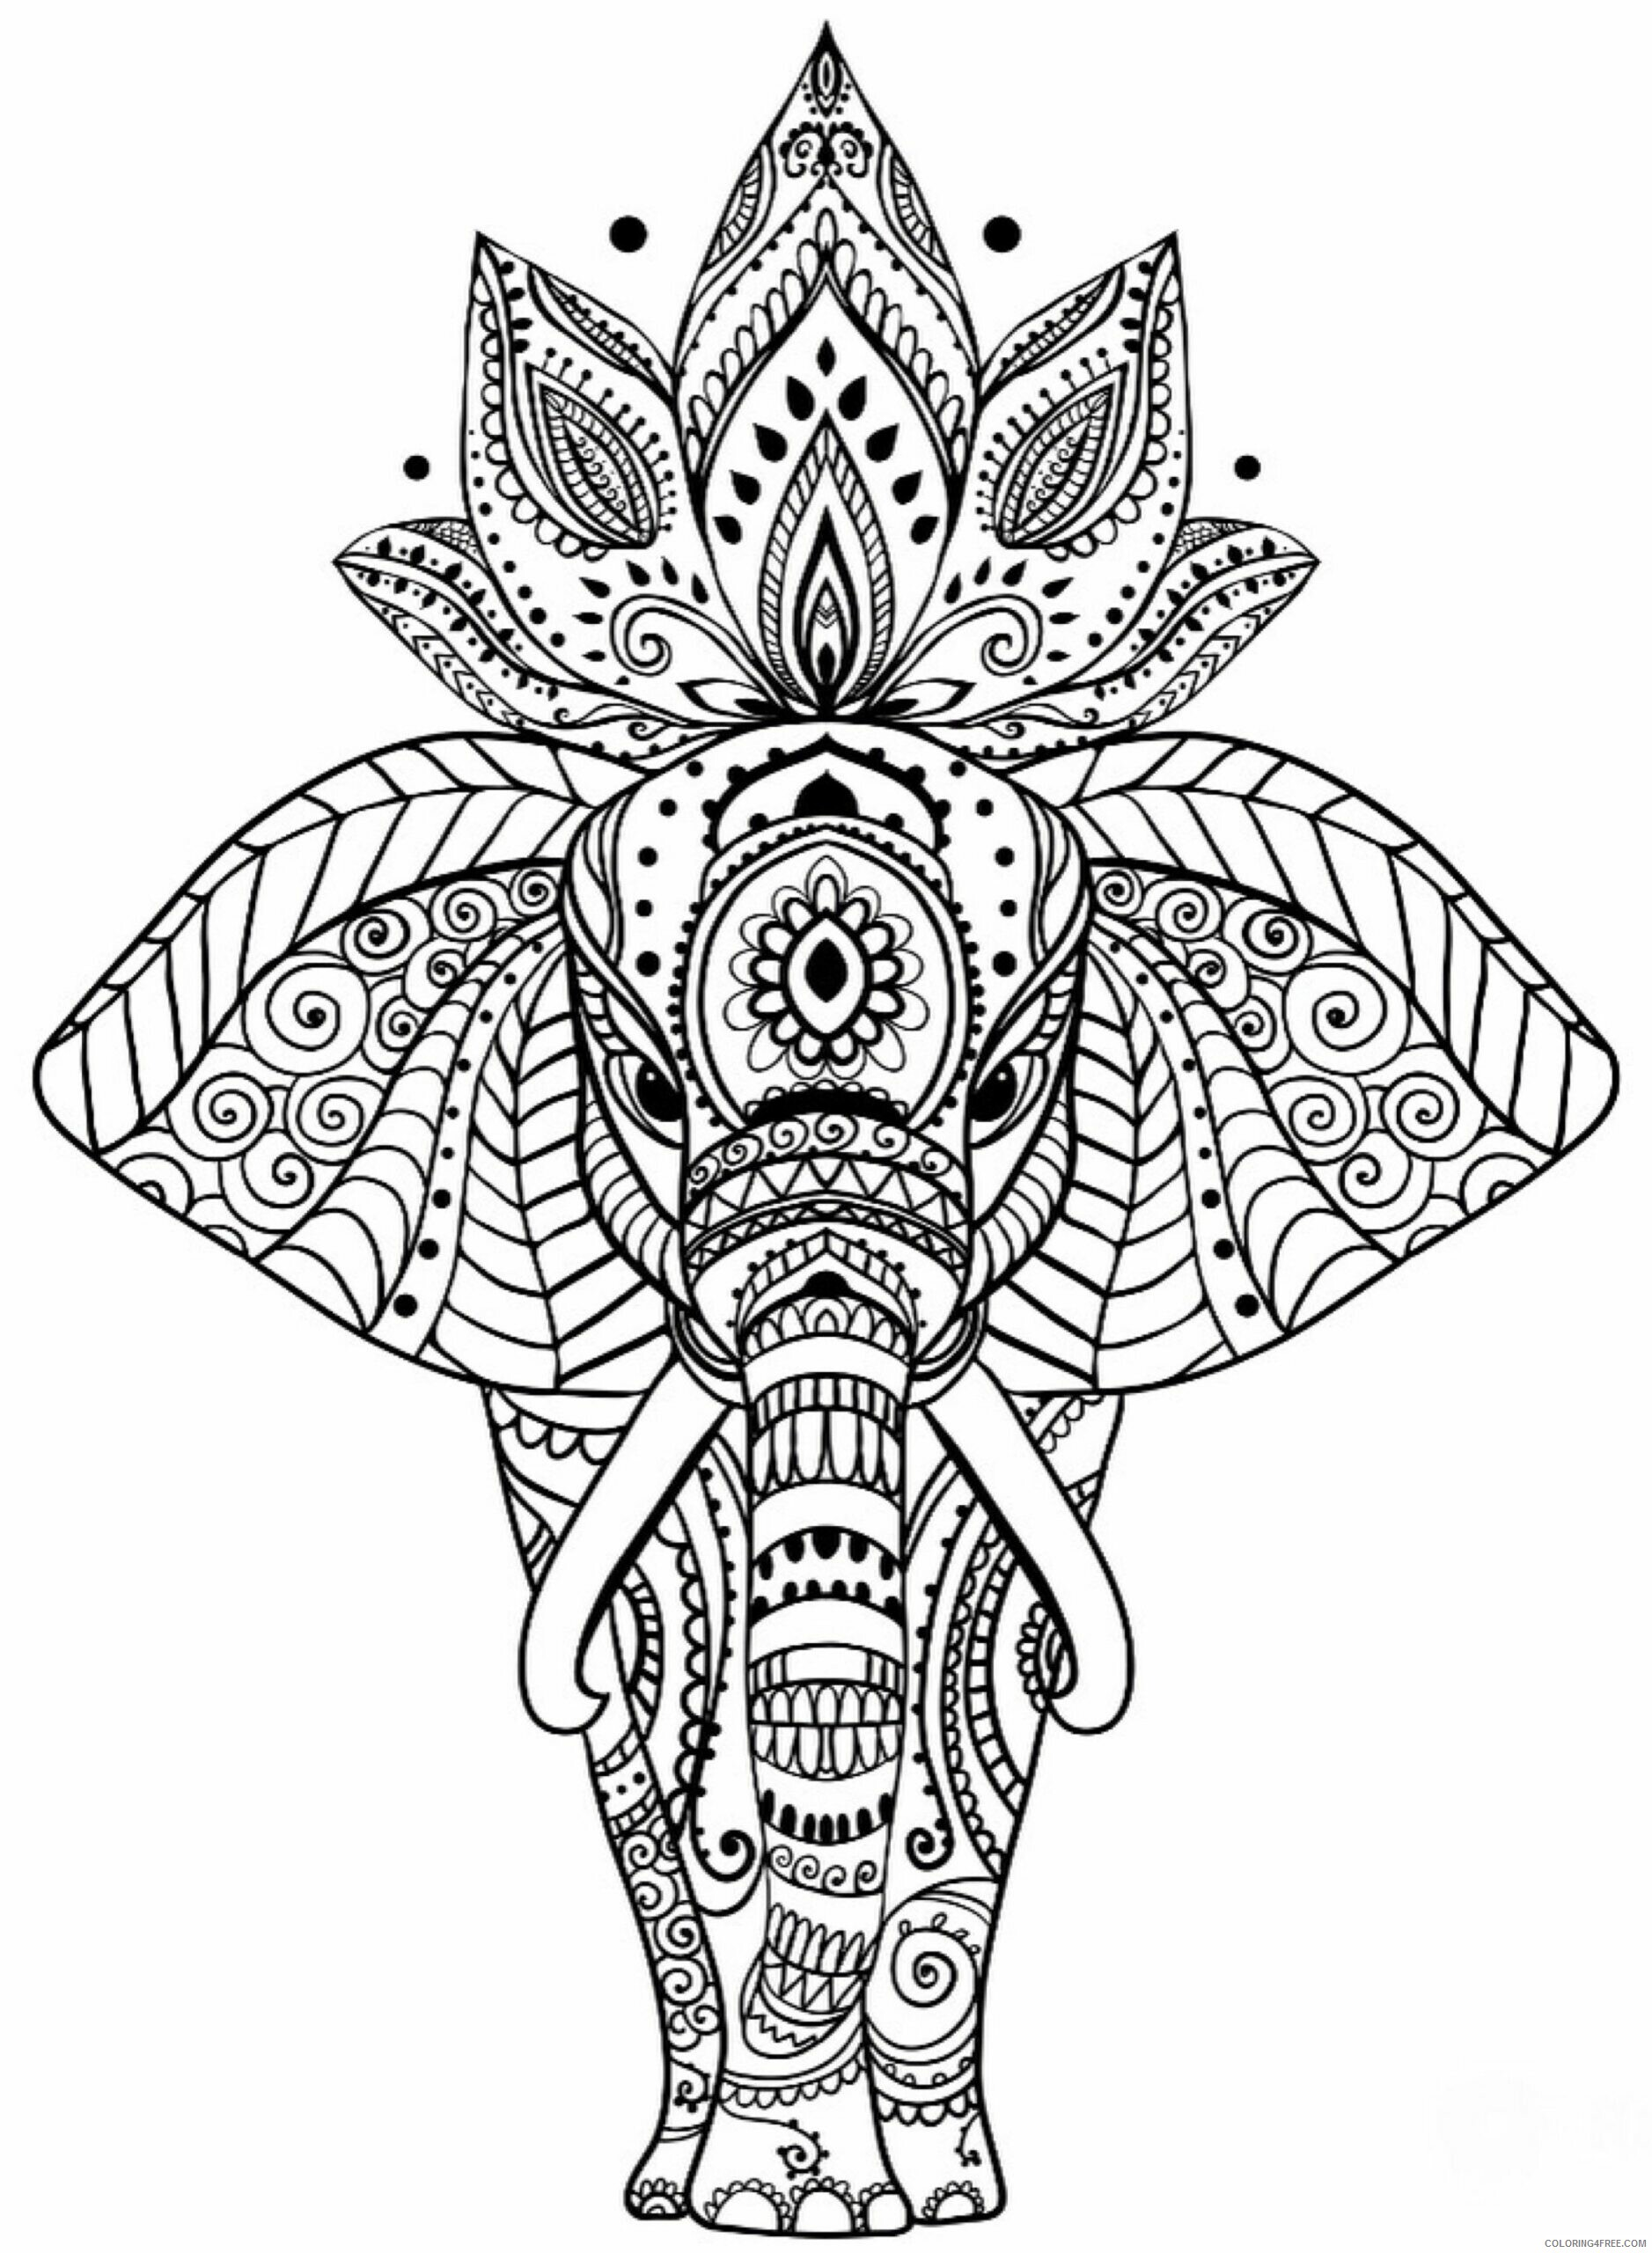 Adult Elephant Coloring Pages Elephant for Adults Printable 2020 265 Coloring4free